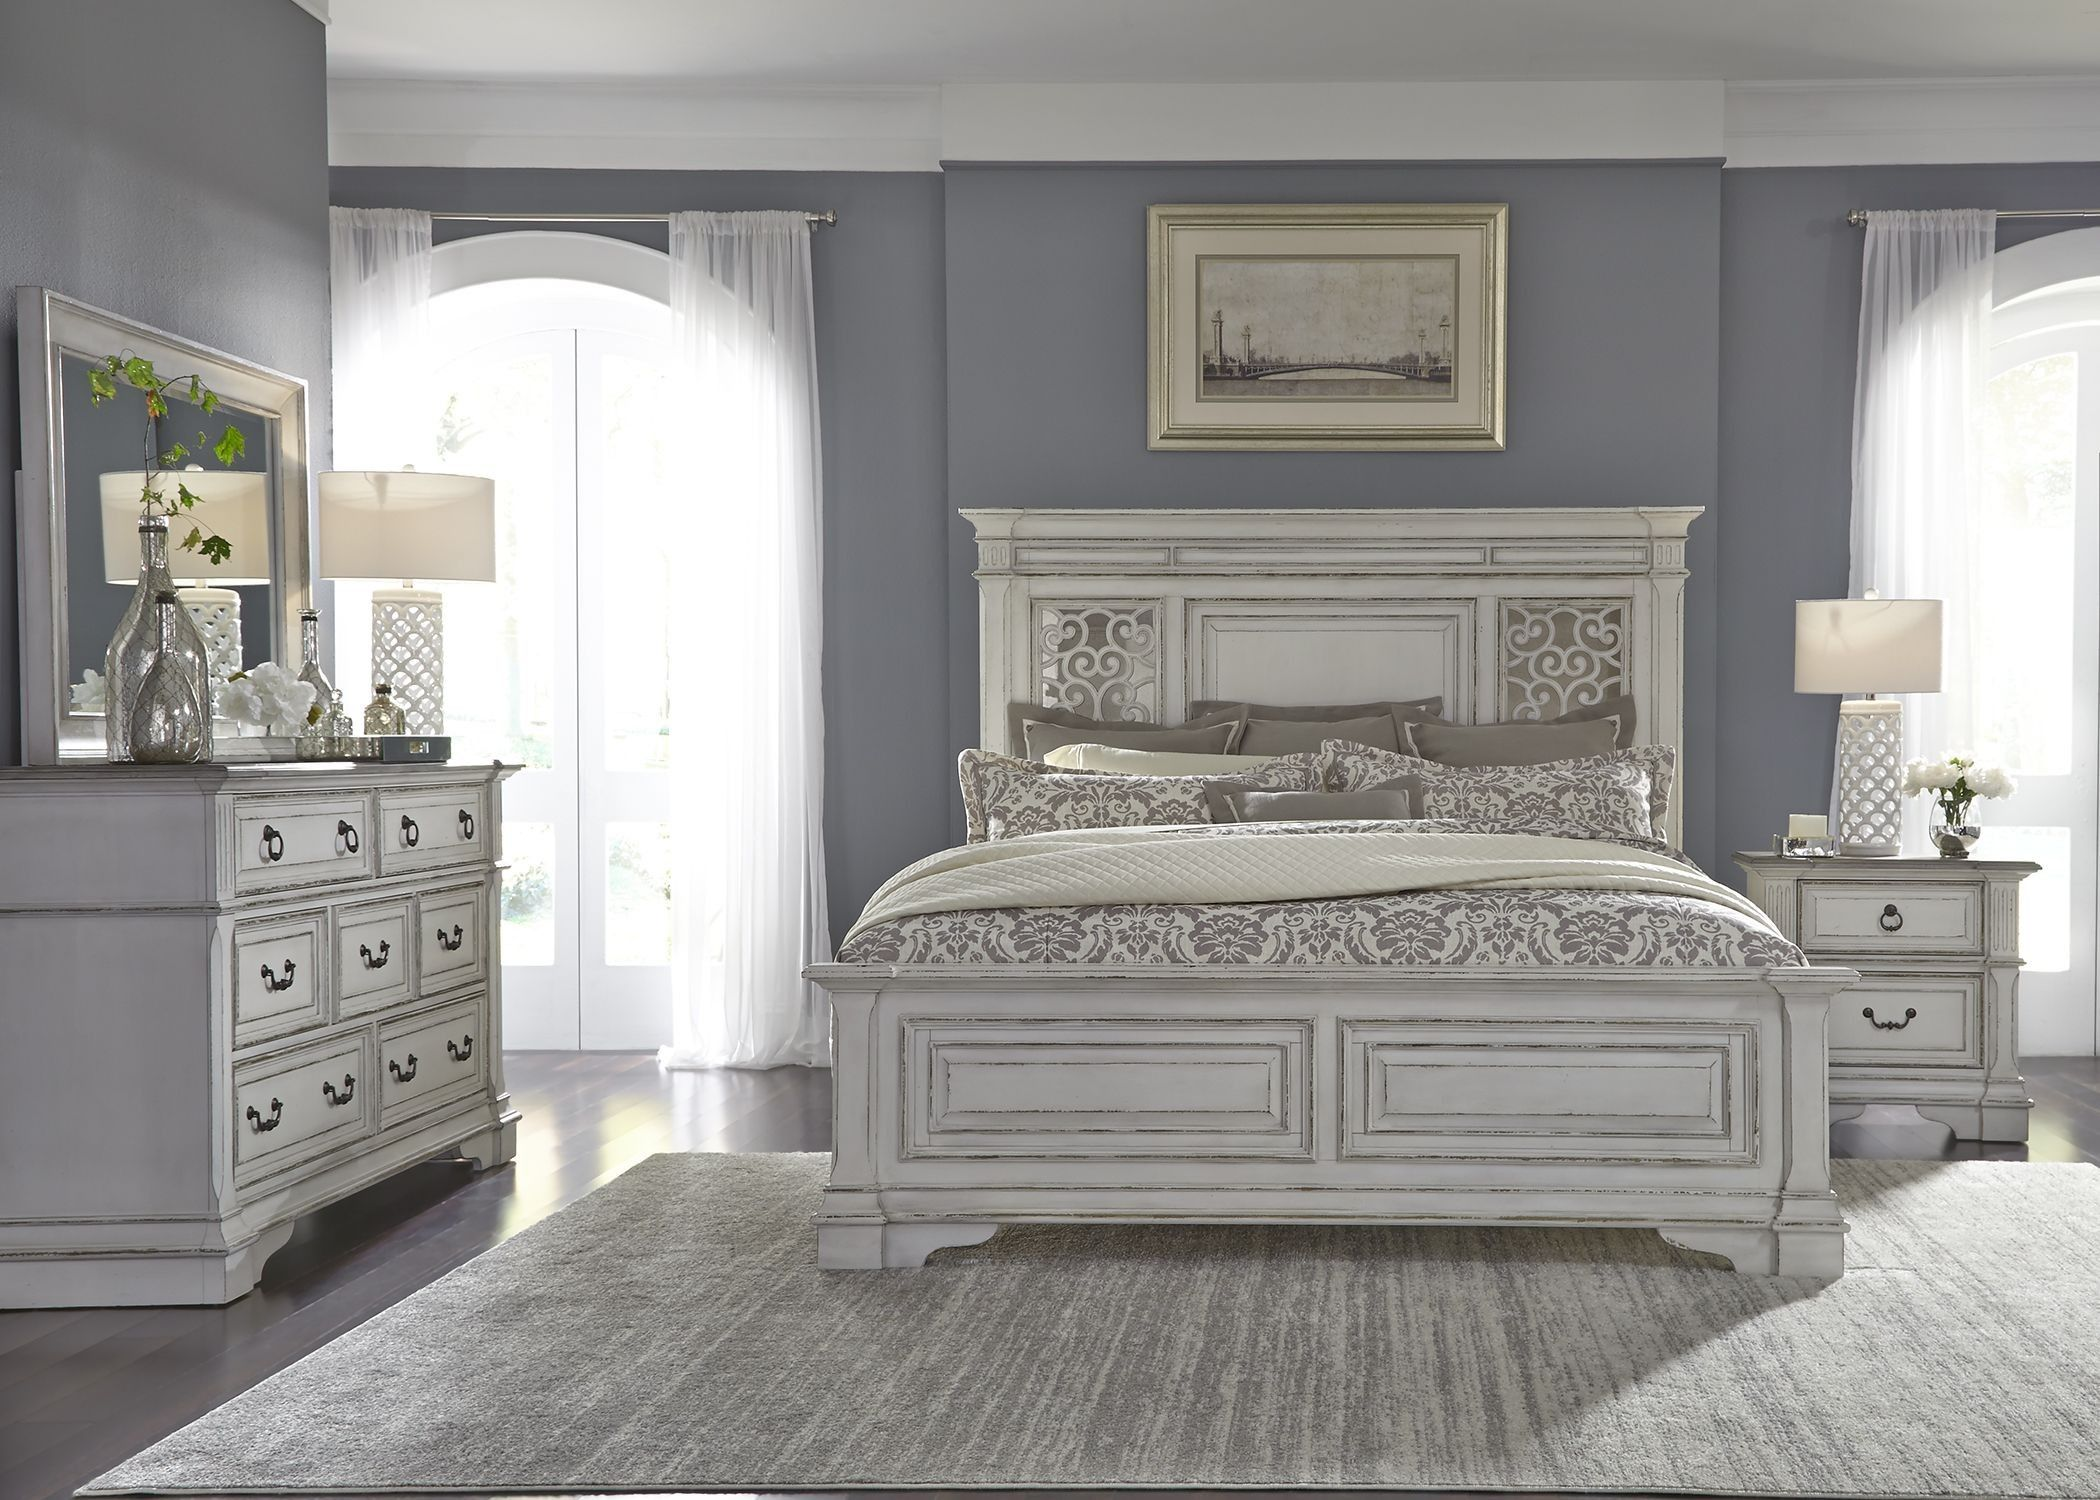 Abbey Park Antique White Panel Bedroom Set in 2019